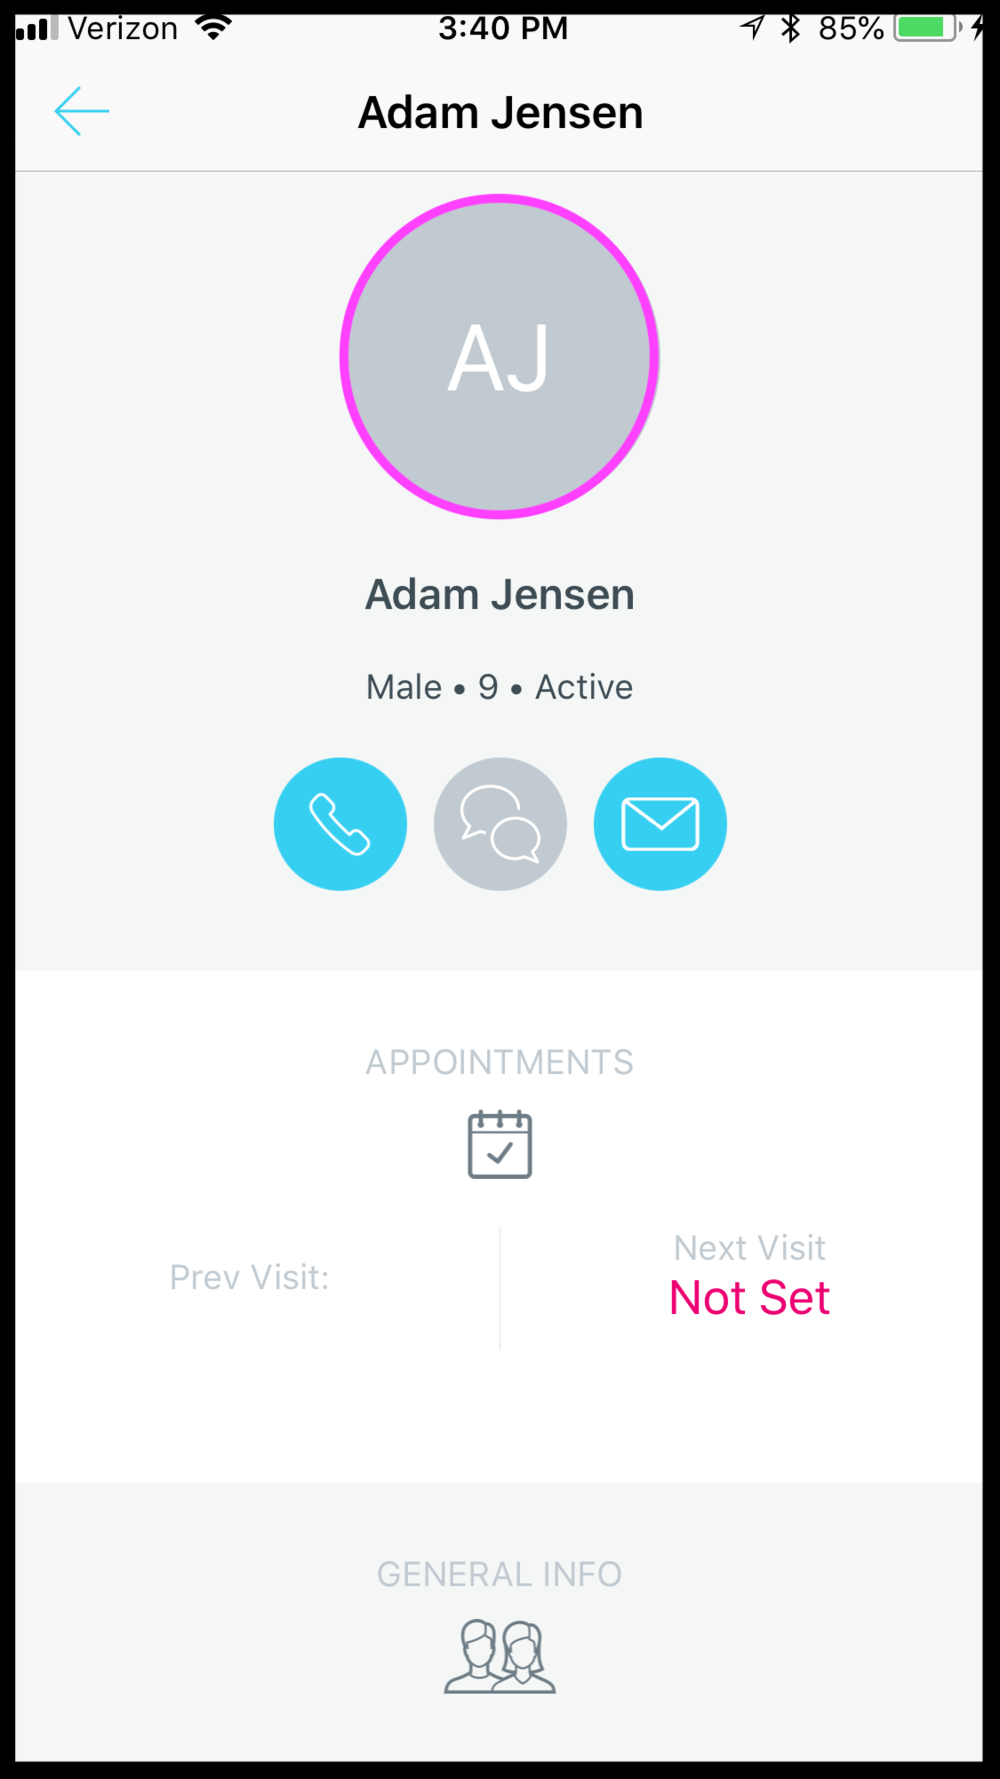 STEP 3 - TAP ON THE PATIENTS ICON ON THE PATIENT DETAILS SCREEN